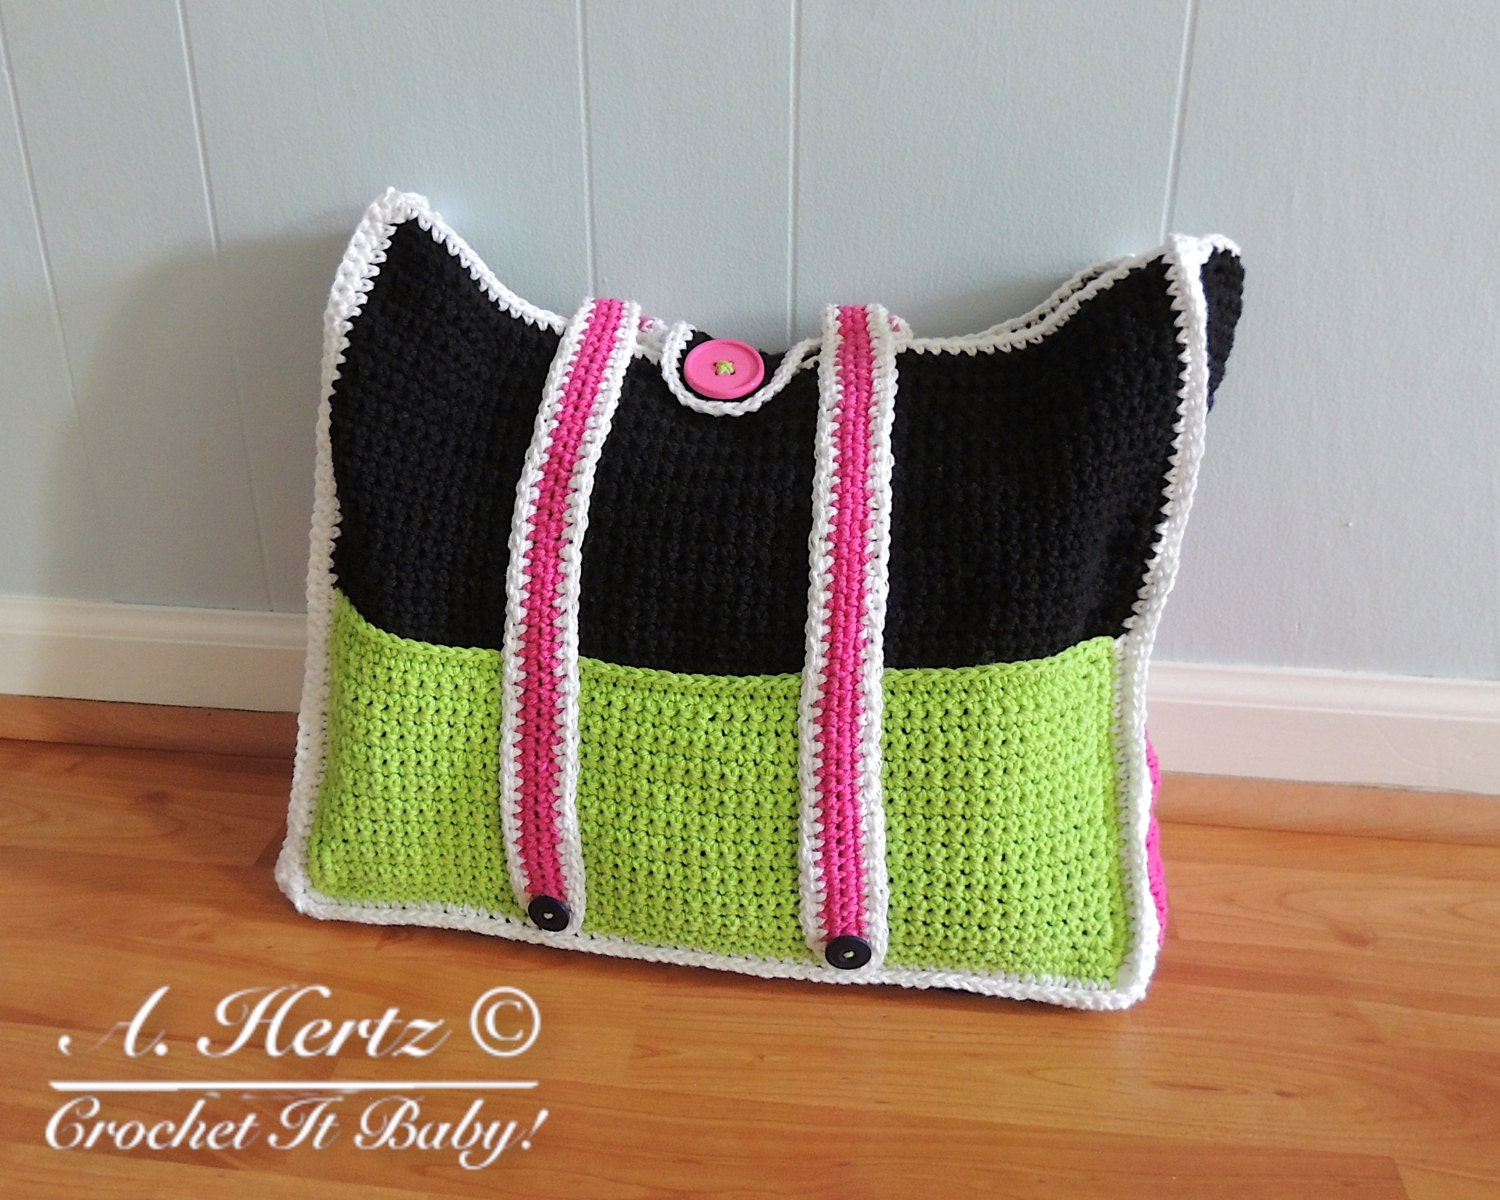 Crochet Bag With Pockets Pattern : Crochet Summer Tote Bag with pockets PATTERN ONLY